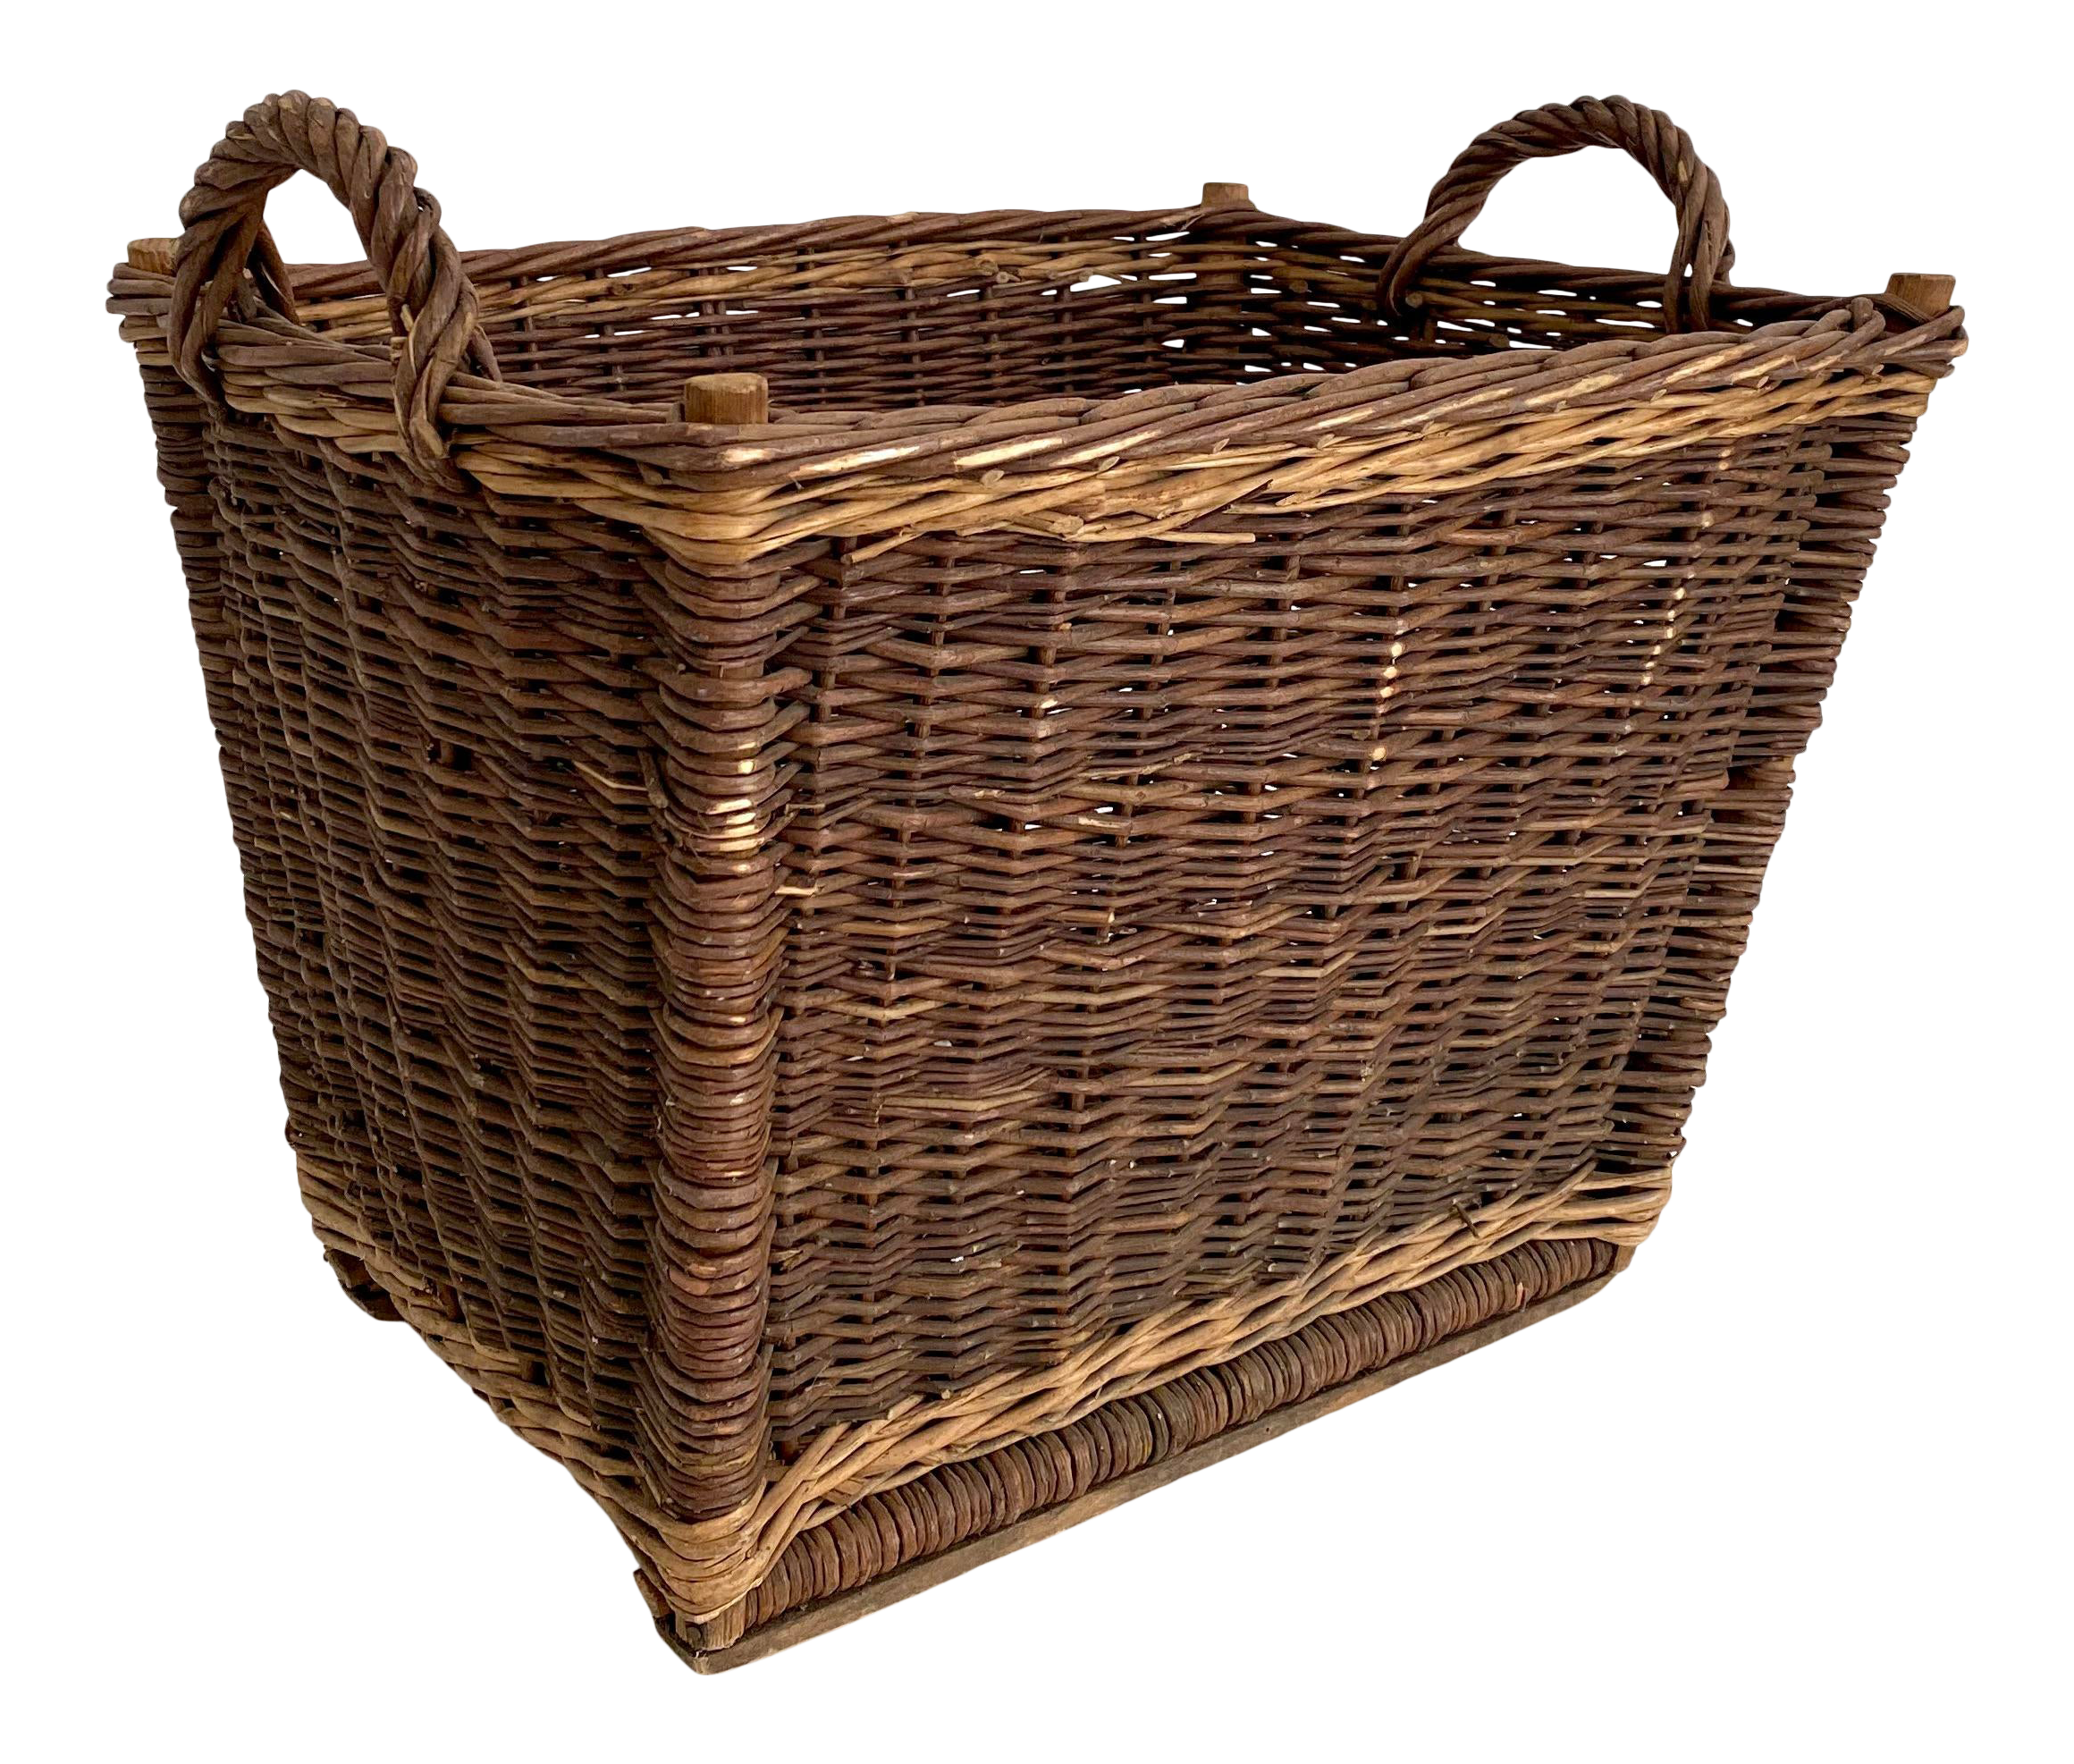 Vintage Lrg woven wicker picnic basket French Market Basket Large lined natural weave handled farmhouse country home decor french